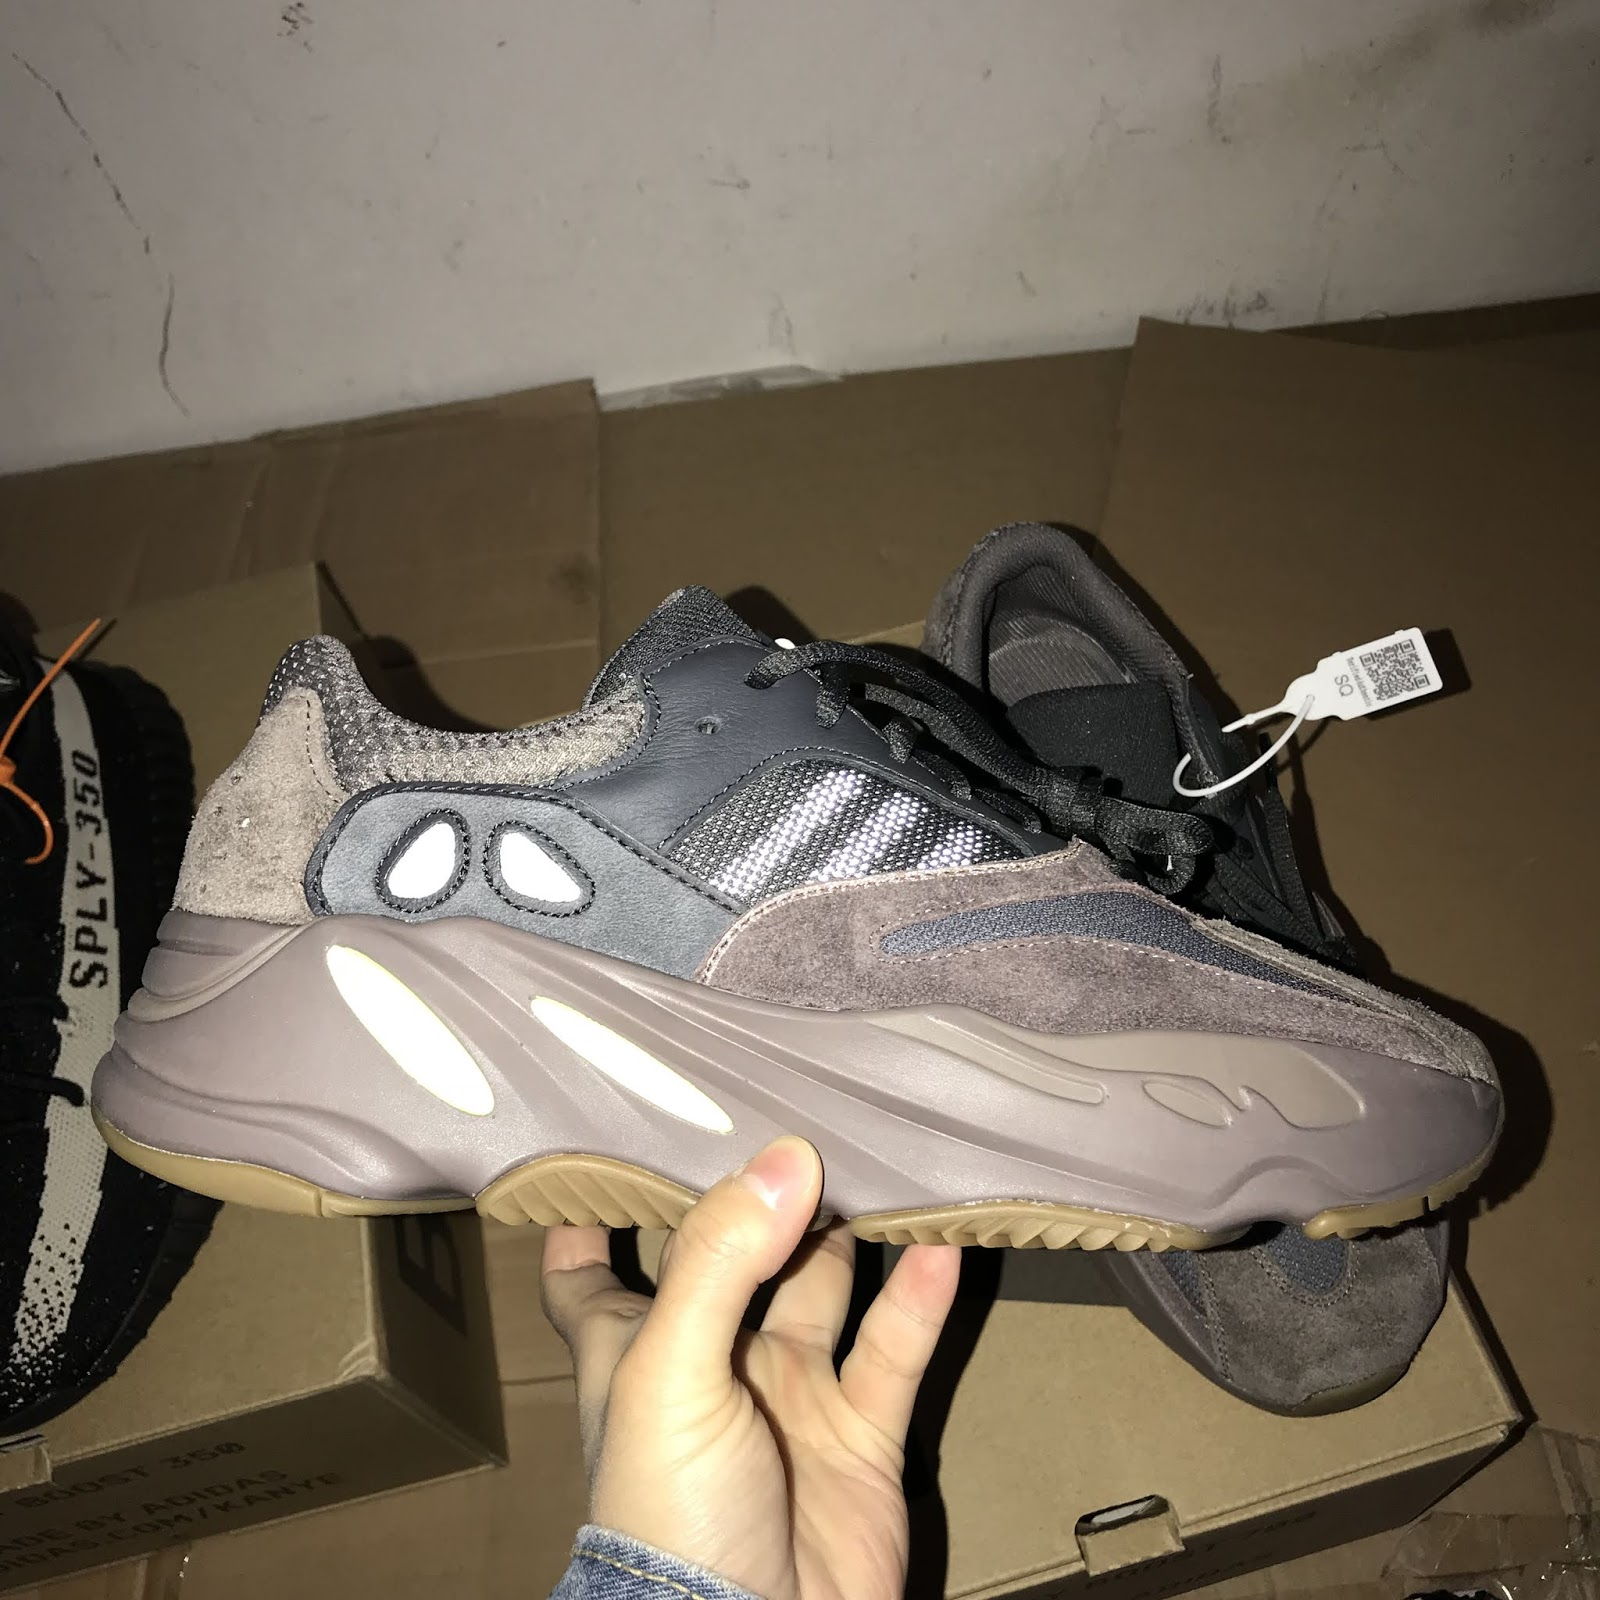 a13e2d395 Yeezy Boost 700 Mauve Not Selling On Youtube Free Adidas Nmd ...